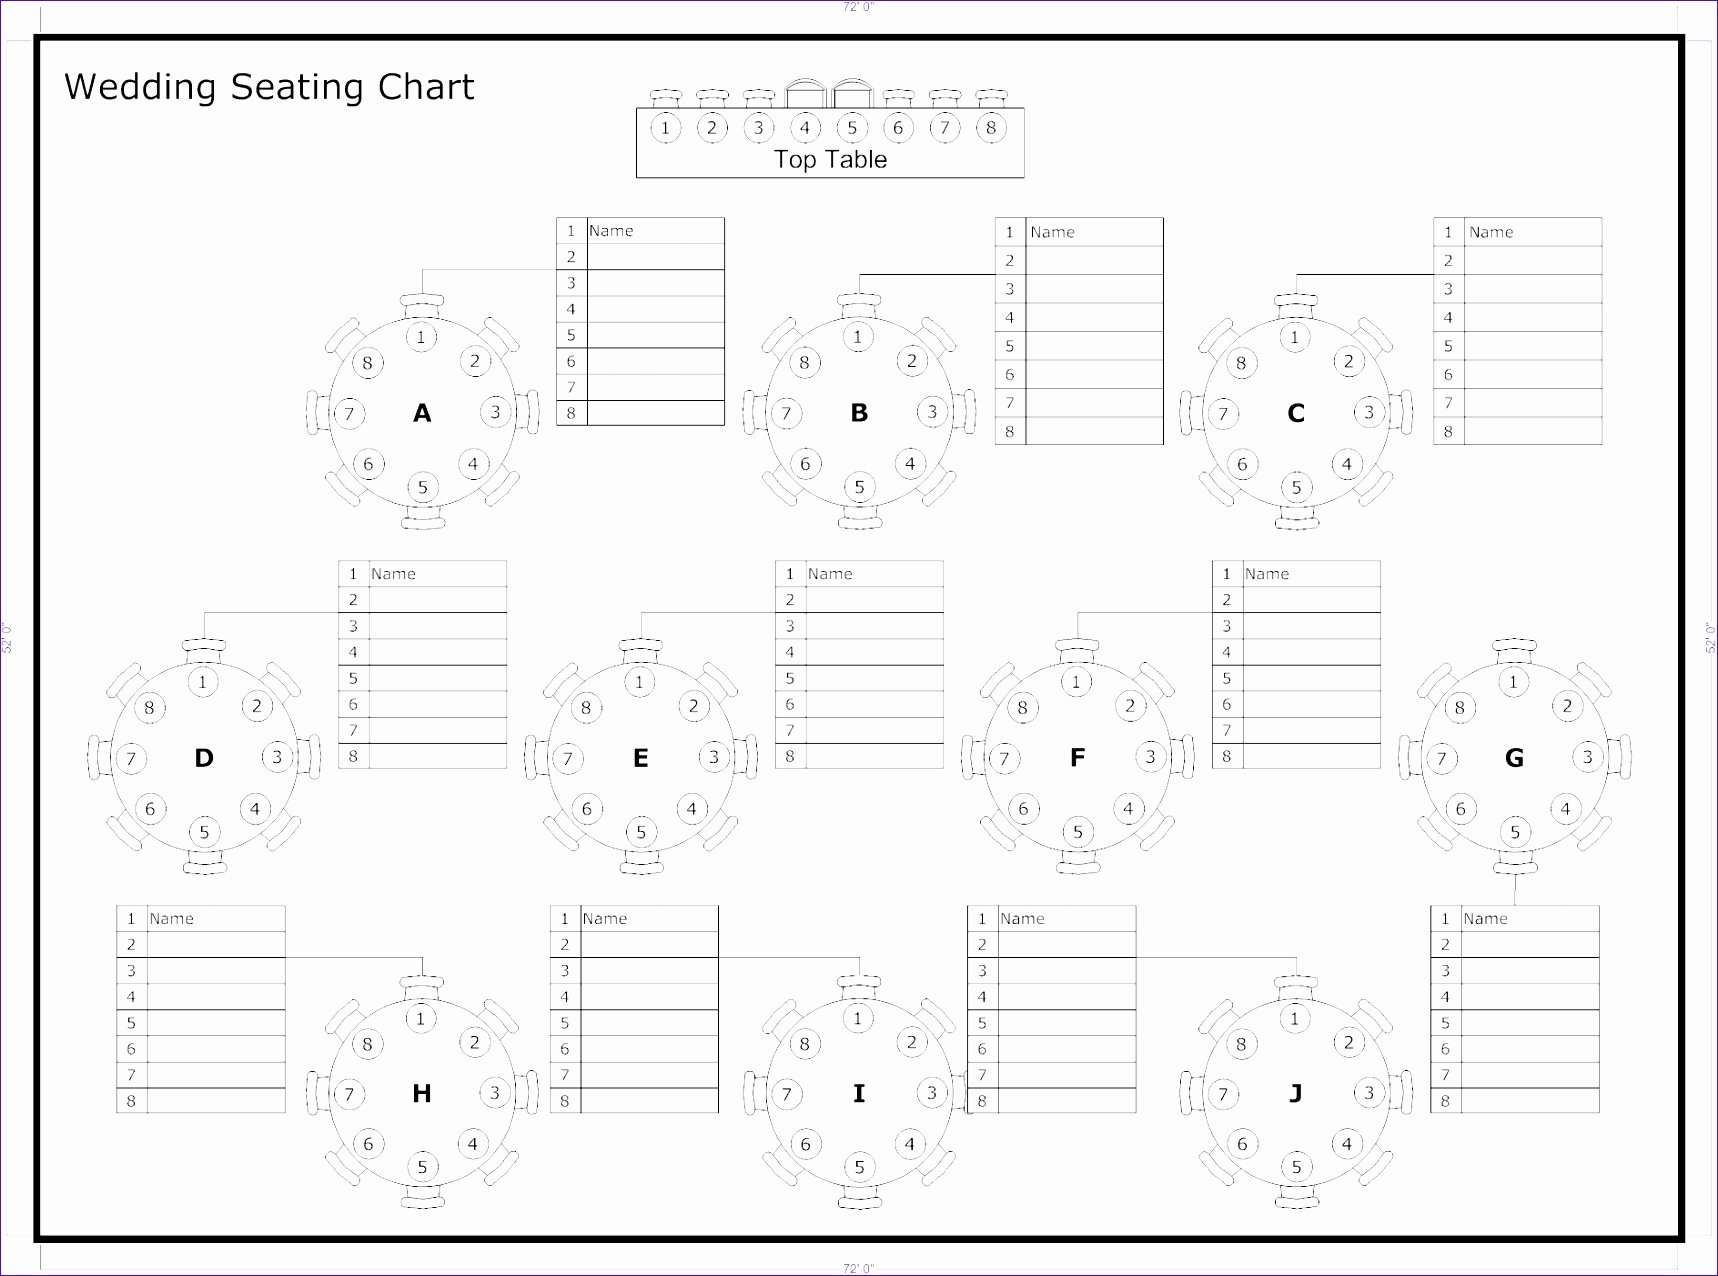 6 Wedding Seating Chart Template Excel Exceltemplates